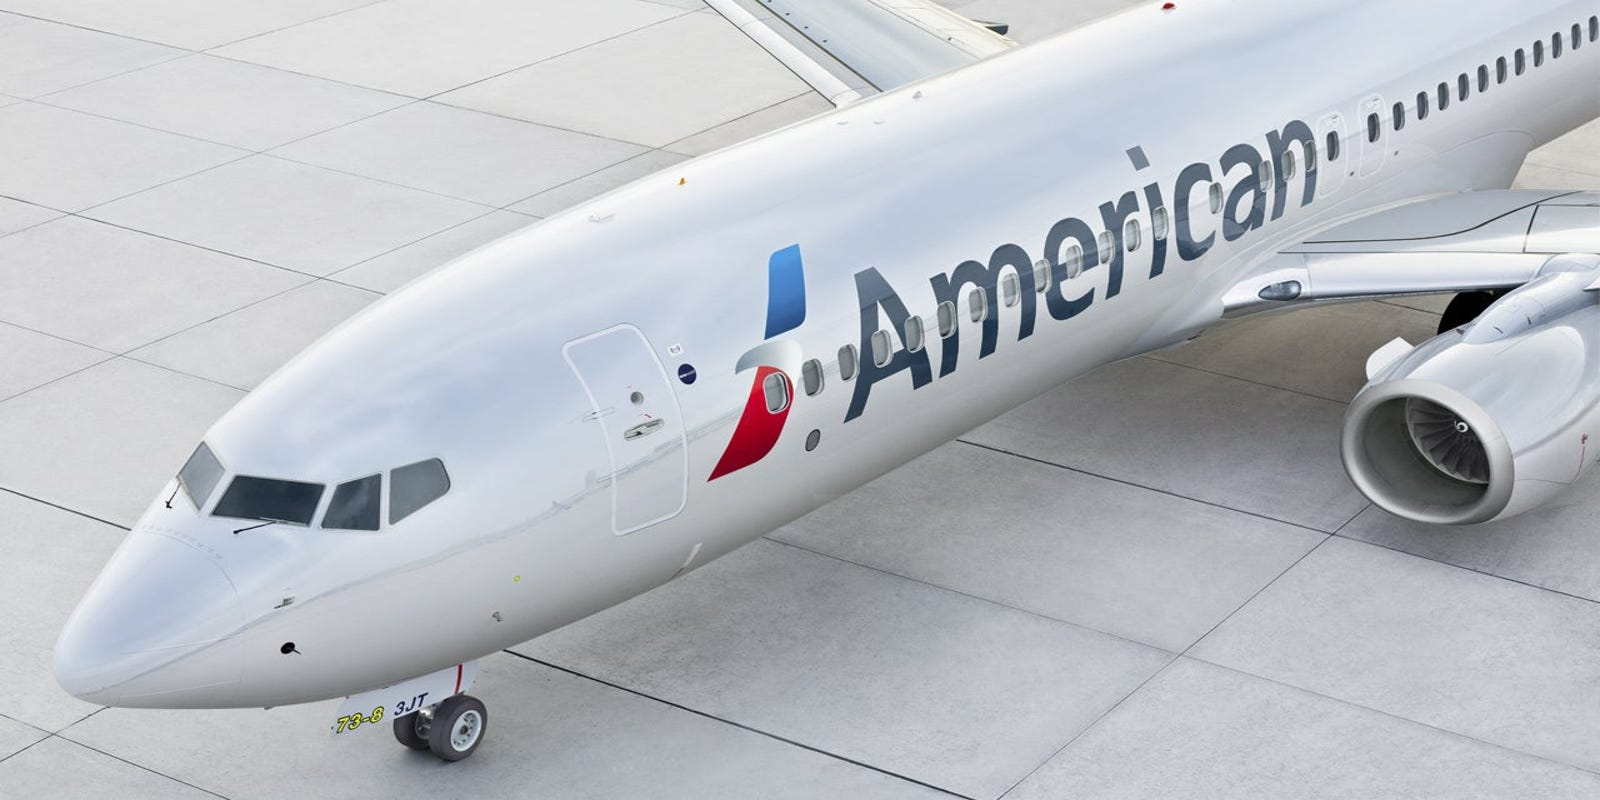 Check your reservation: American Airlines just slashed nearly 1,000 July flights as operation woes mount